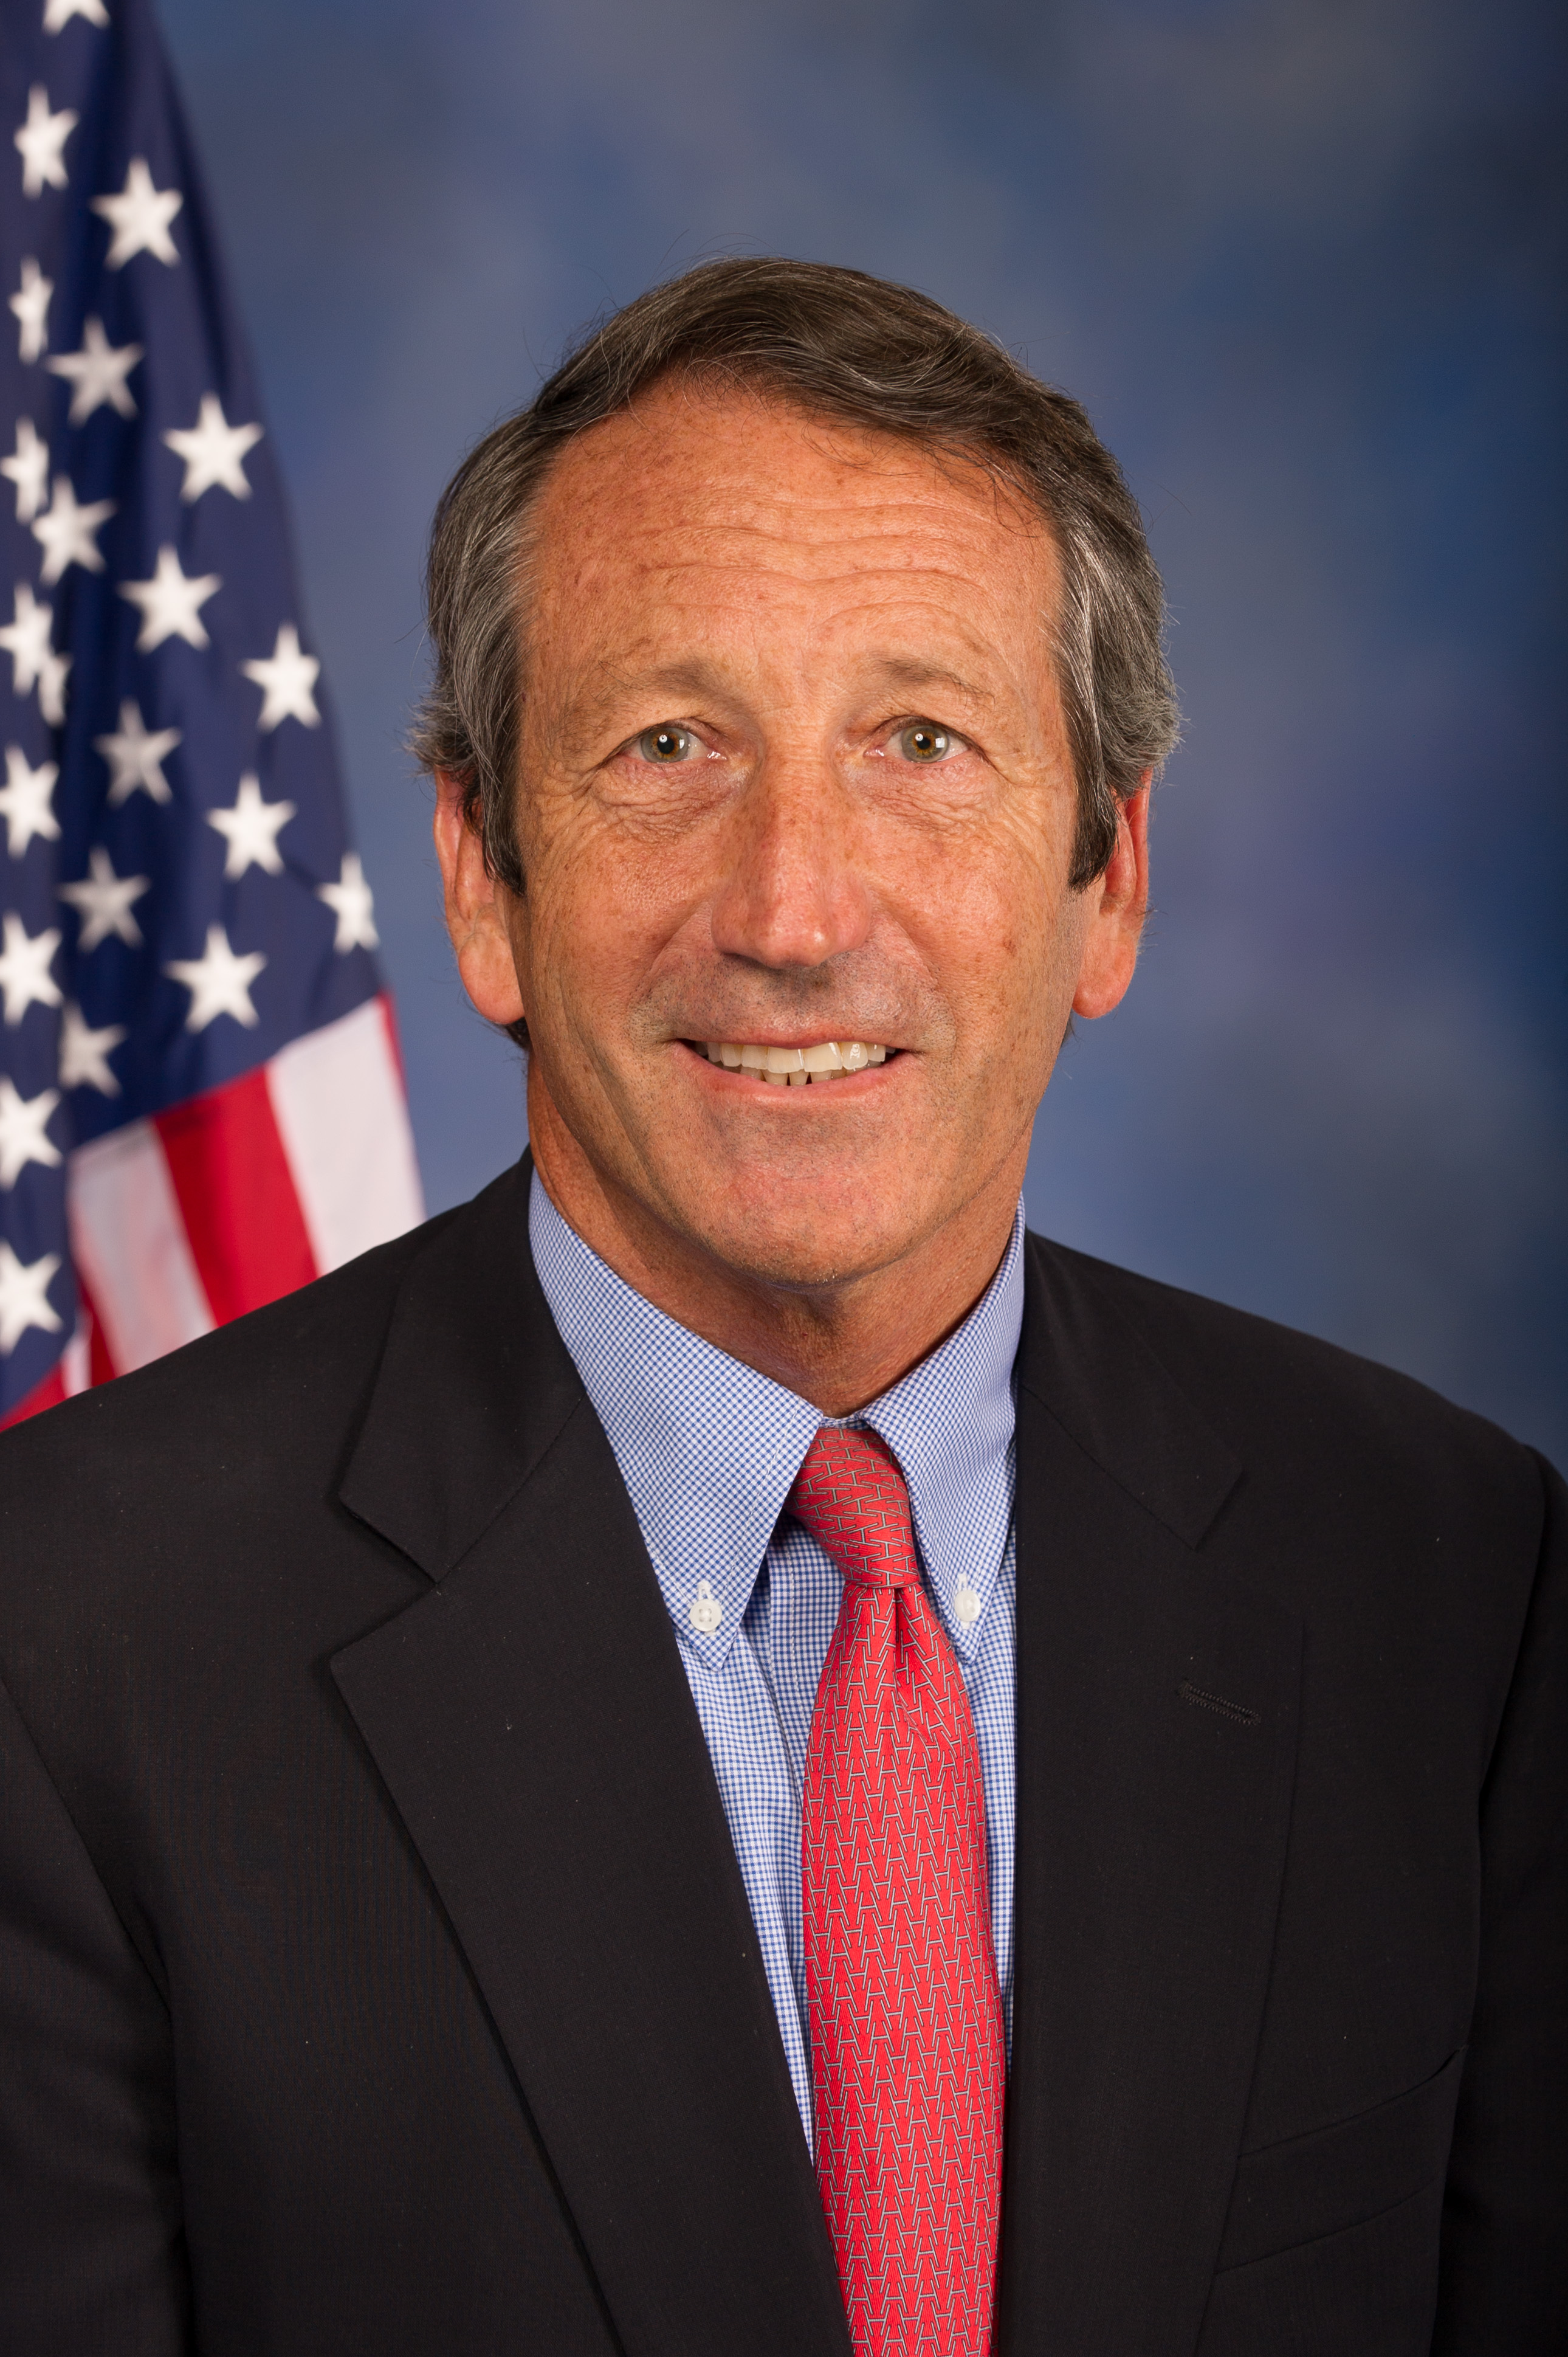 Mark Sanford drops GOP primary challenge of Trump